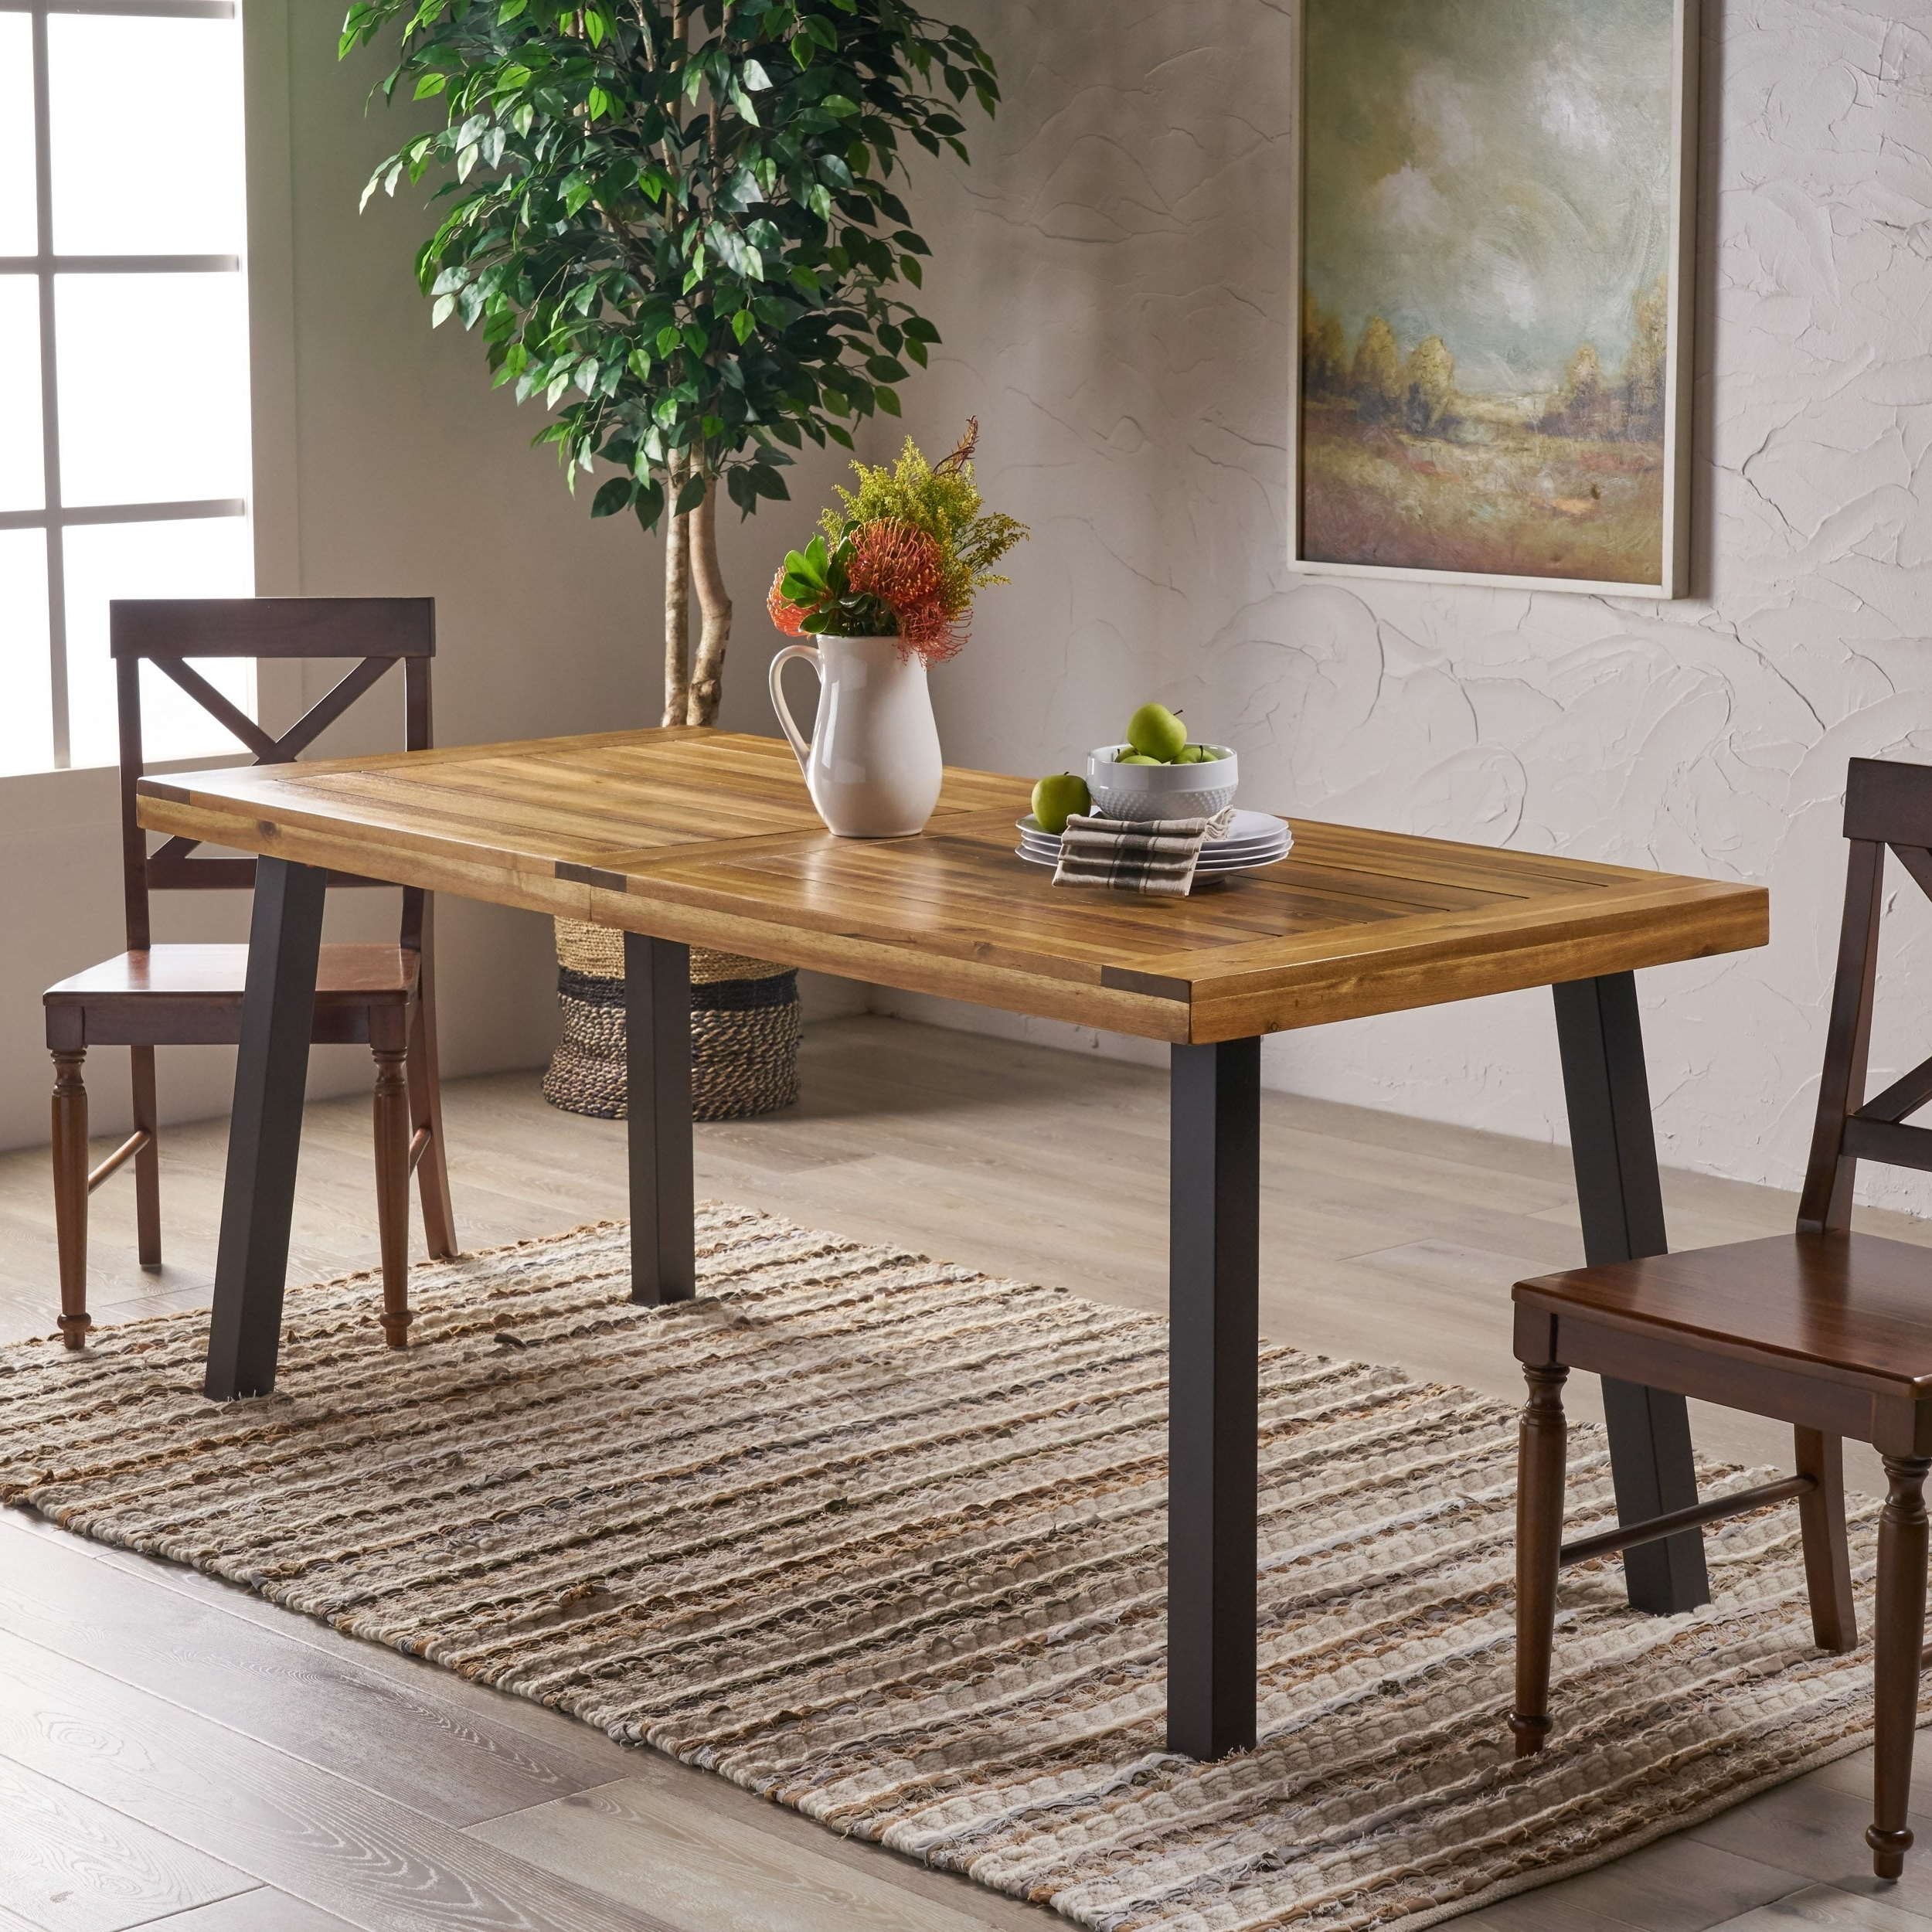 Falmer 3 Piece Solid Wood Dining Sets Pertaining To Most Recent Buy Rustic Kitchen & Dining Room Tables Online At Overstock (View 4 of 25)